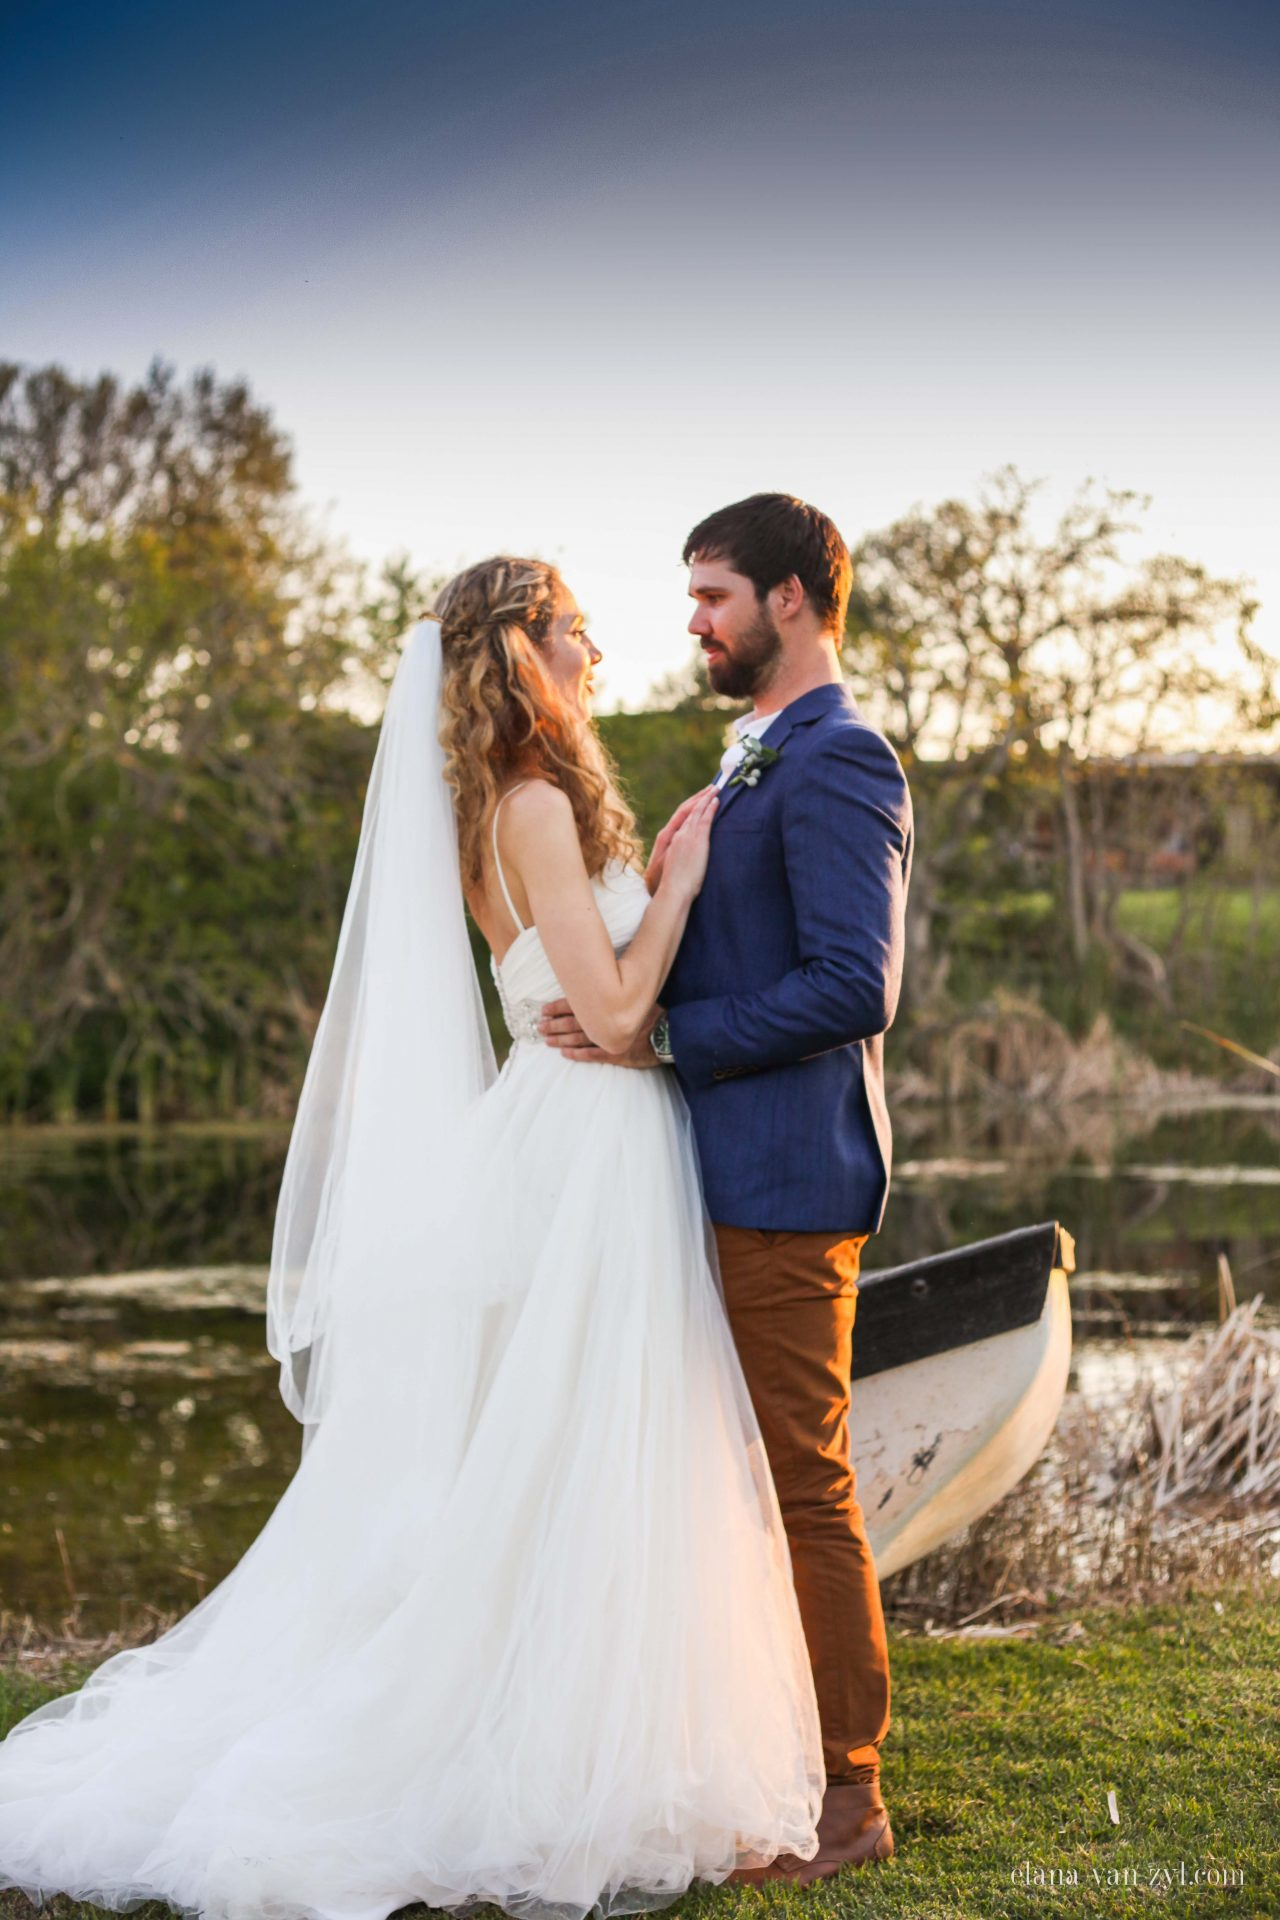 lorien-david-elana-van-zyl-swellendam-overberg-photographer-de-uijlenes-wedding-8347